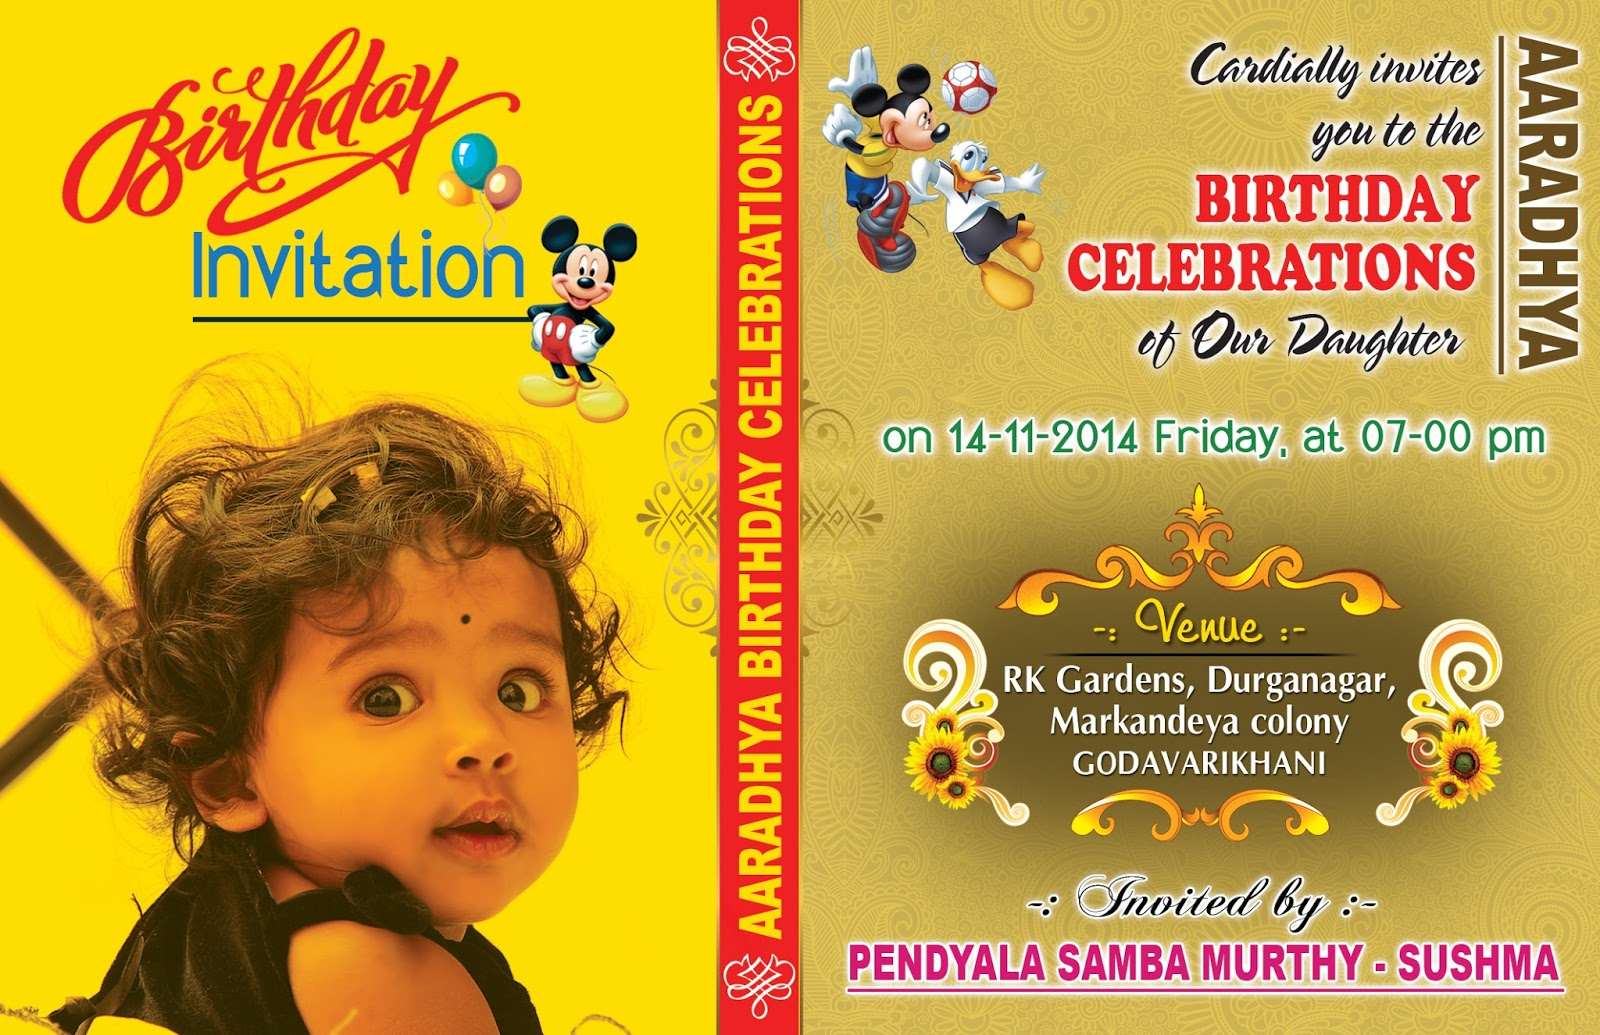 baby birthday invitation card design ; birthday-invitation-card-with-yellow-background-completing-with-unique-and-simple-design-also-elegant-and-green-background-with-a-cute-baby-girl